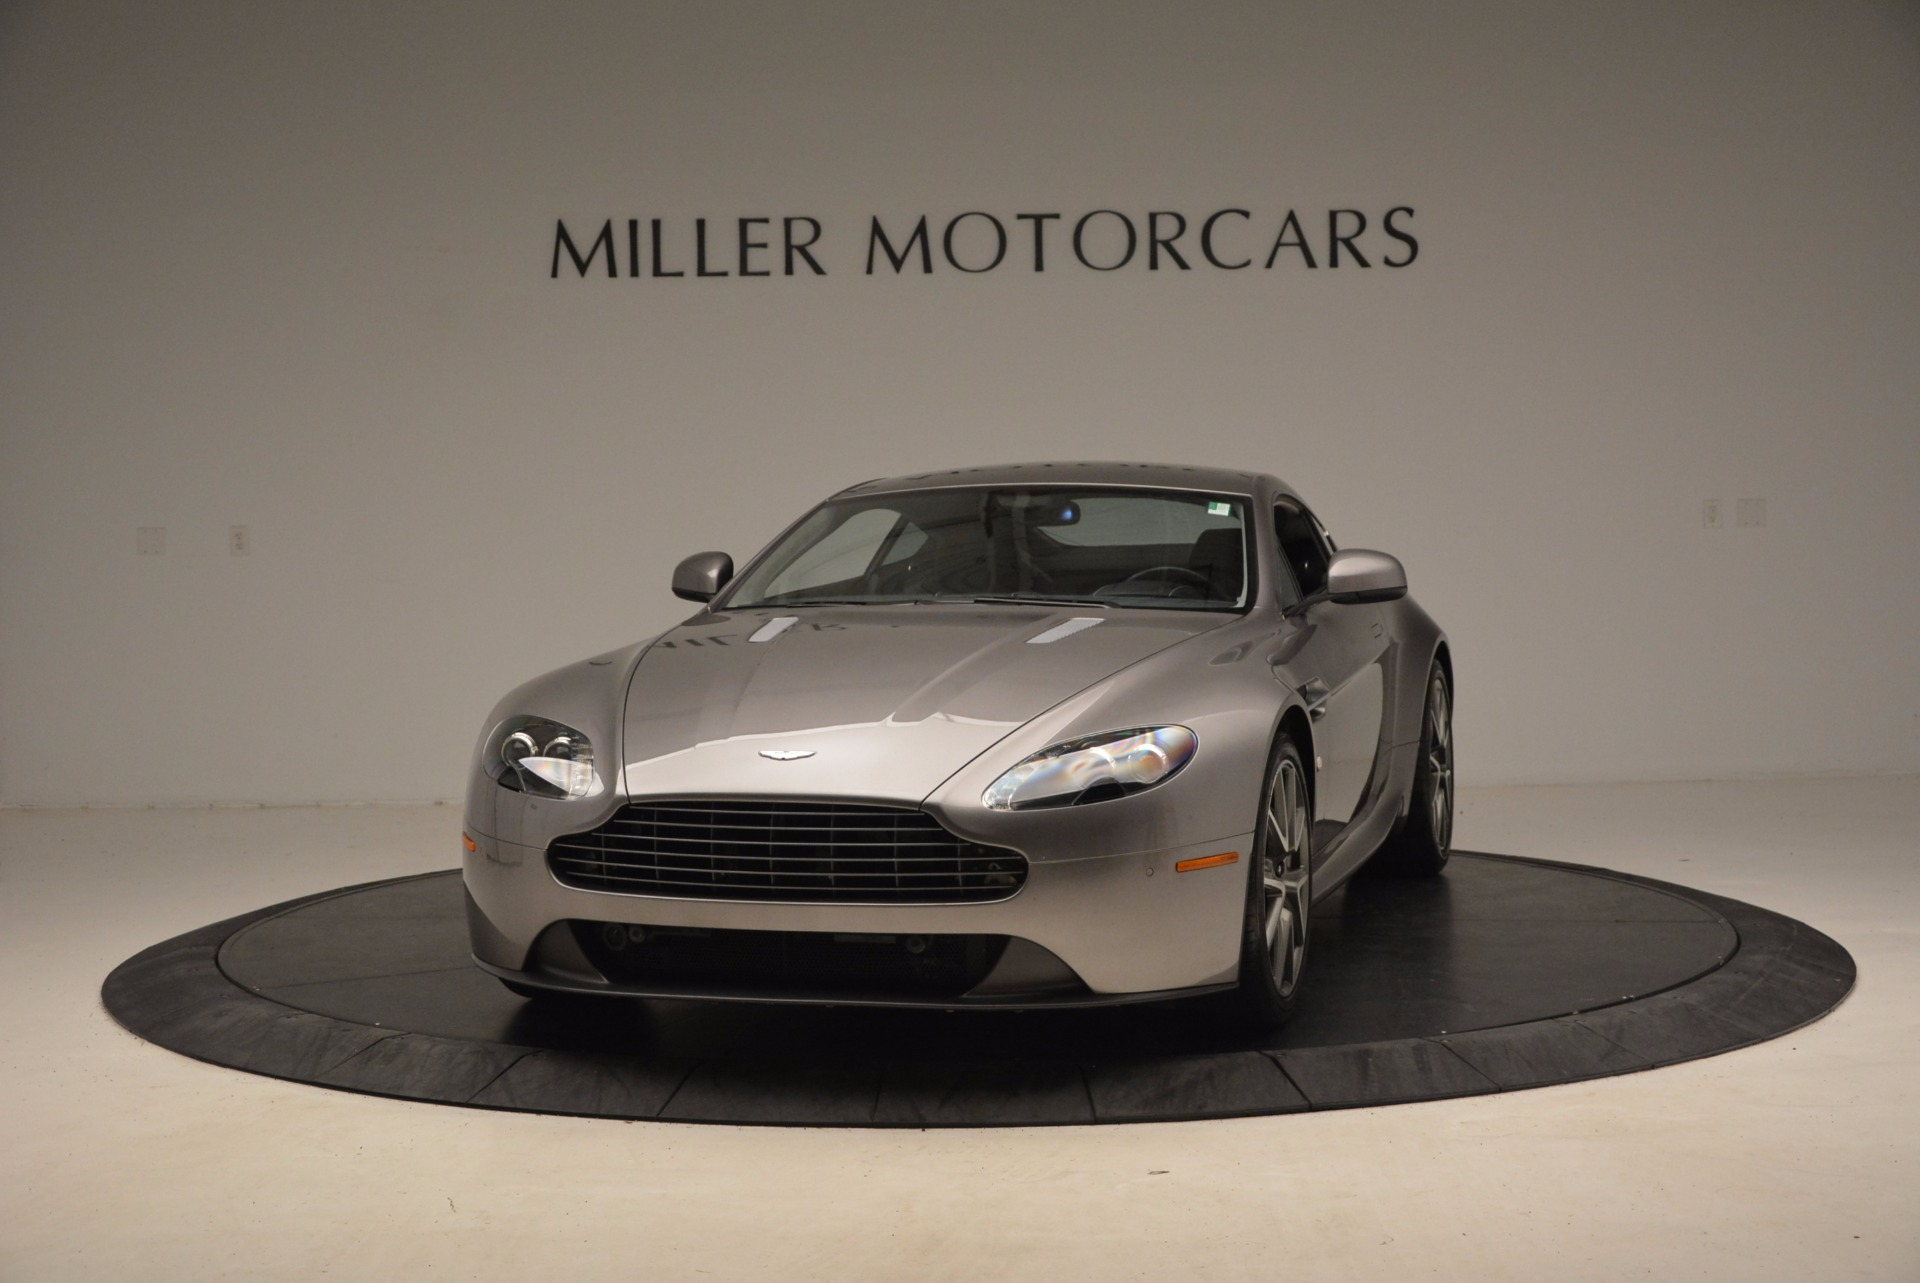 Used 2012 Aston Martin V8 Vantage for sale Sold at Alfa Romeo of Greenwich in Greenwich CT 06830 1